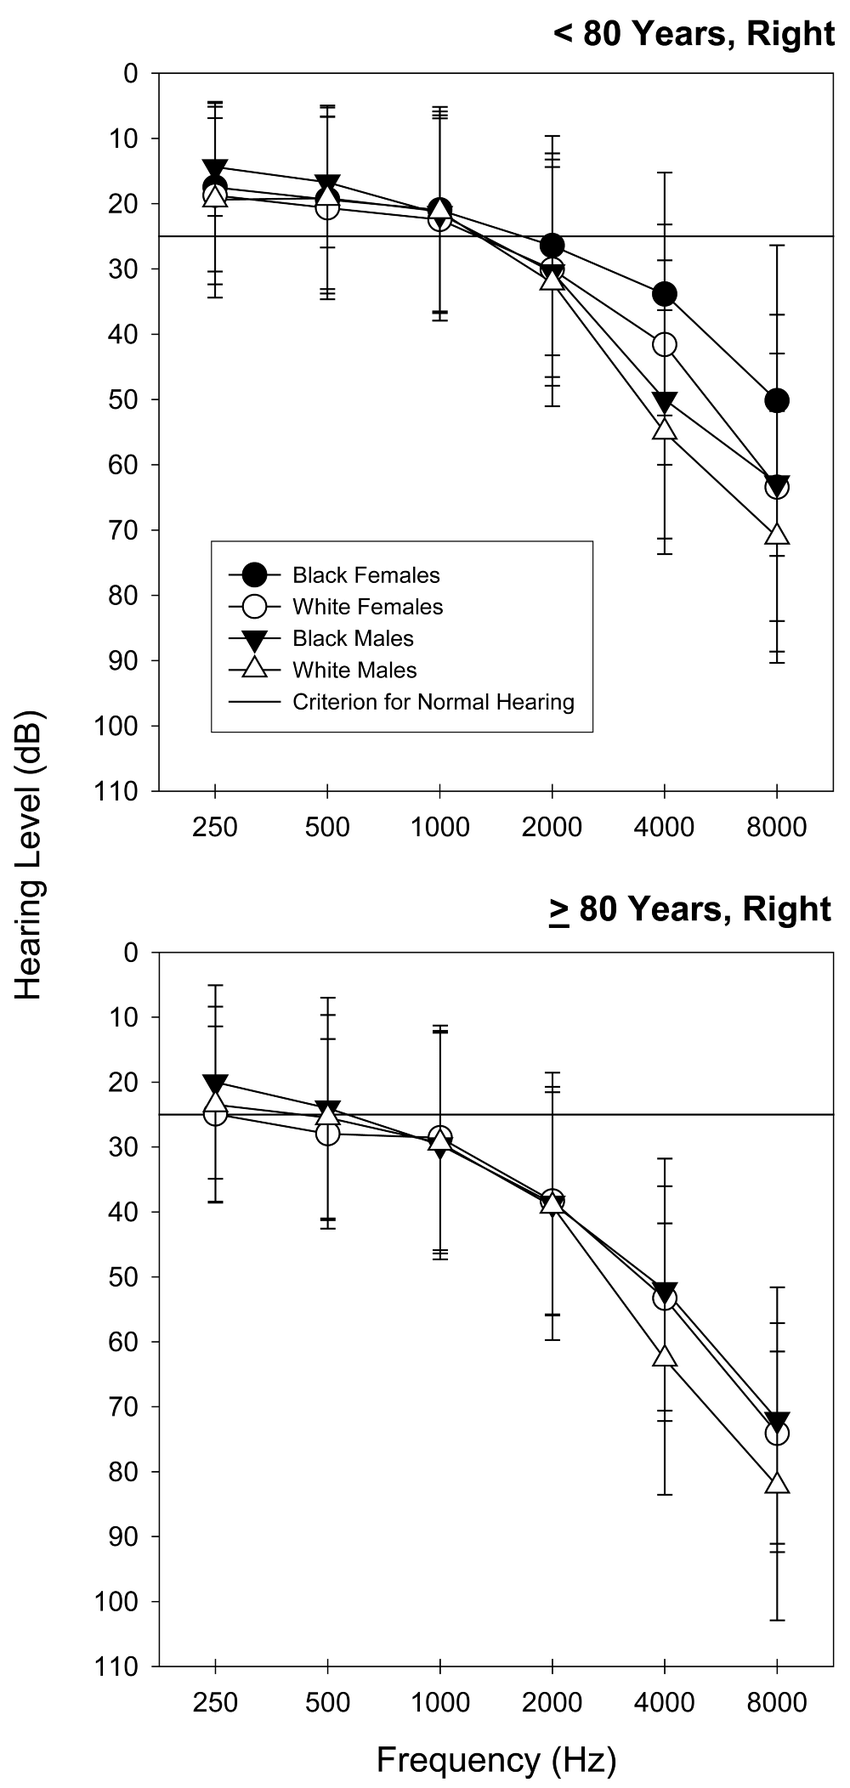 medium resolution of mean right ear hearing thresholds for standard audiometric frequencies the error bars reflect